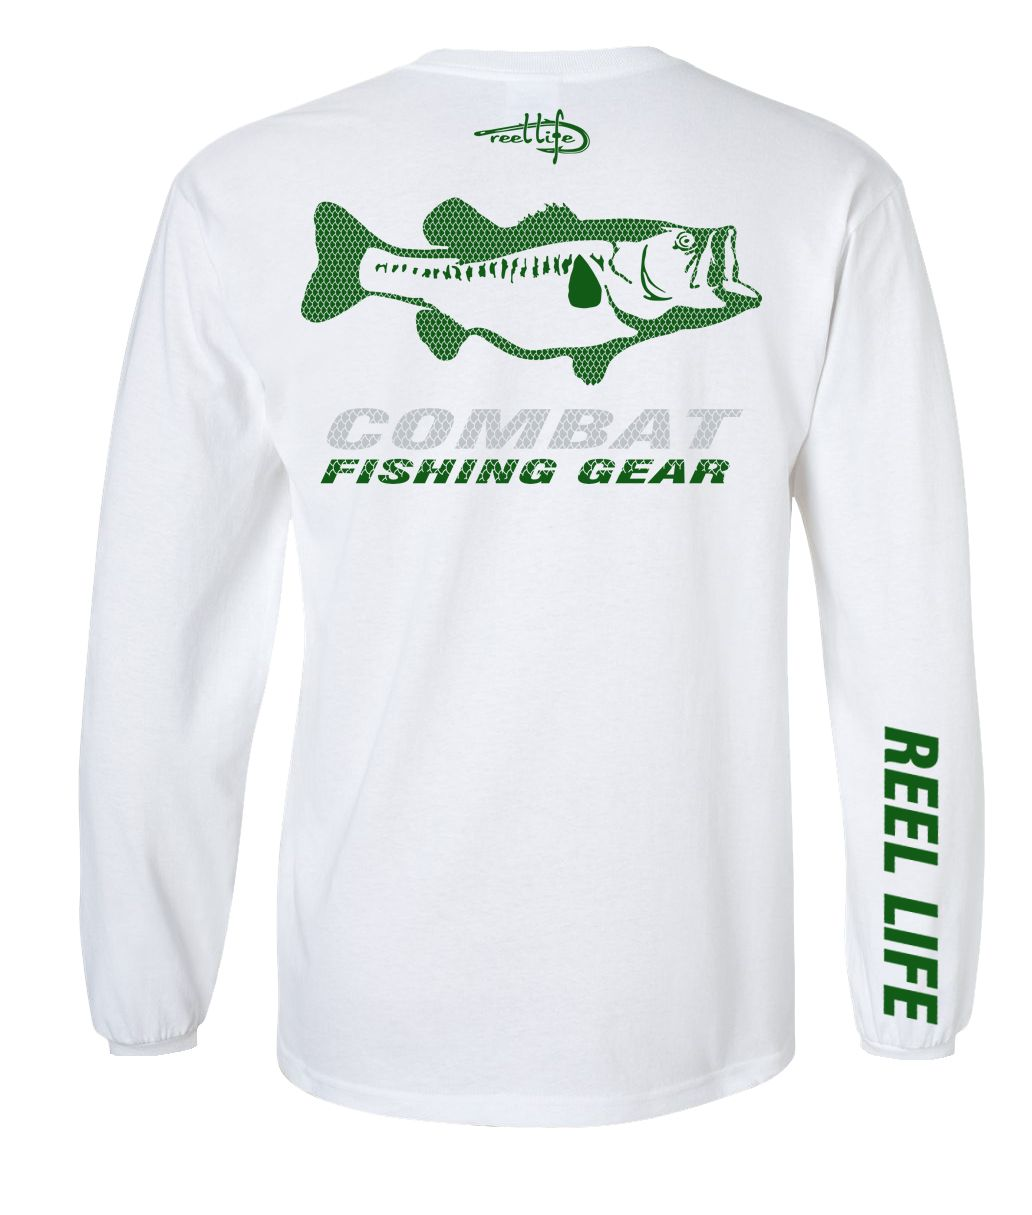 Men 39 s fishing apparel for saltwater and freshwater angler for Saltwater fishing shirts